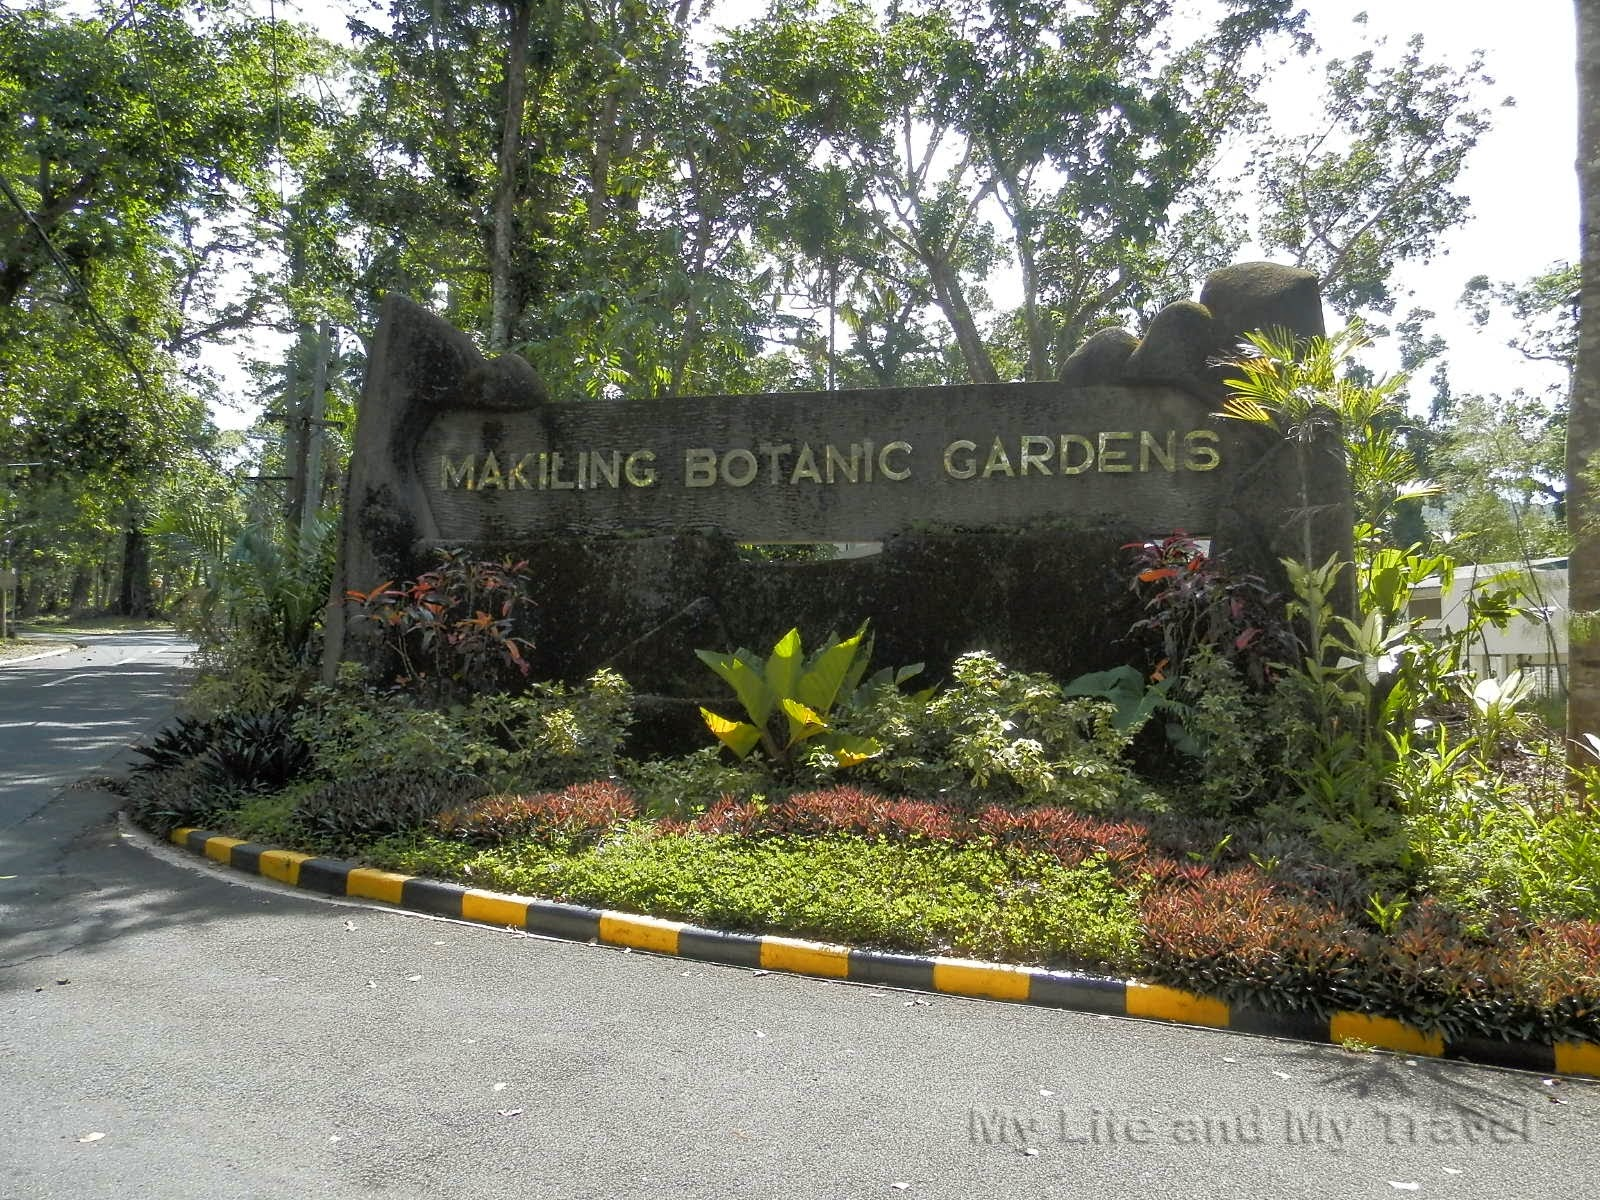 My life and my travel makiling botanic garden for Landscape my garden